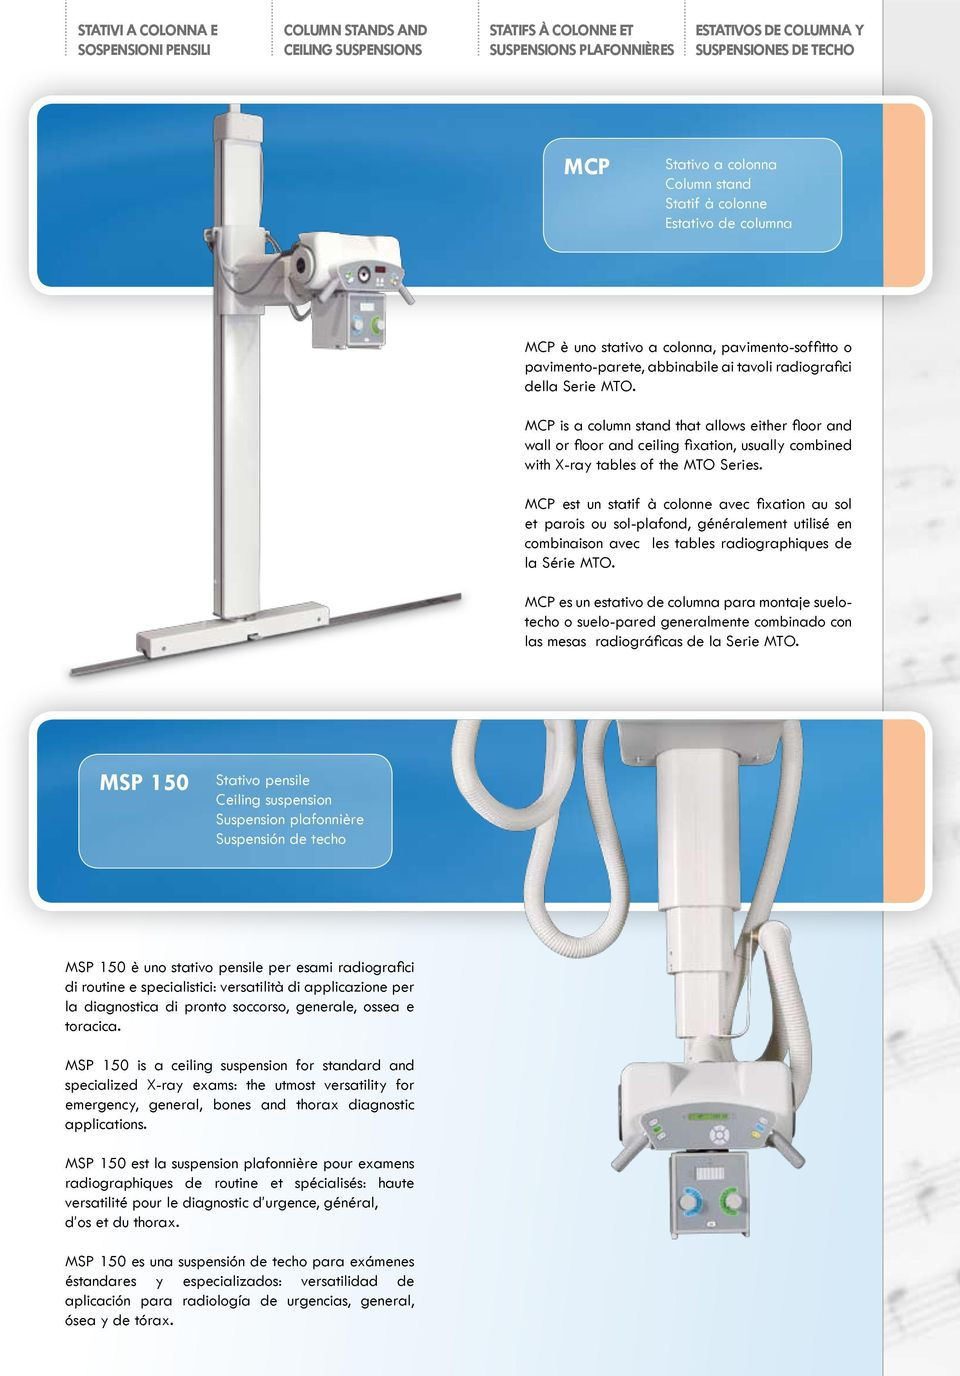 MCP is a column stand that allows either floor and wall or floor and ceiling fixation, usually combined with X-ray tables of the MTO Series.